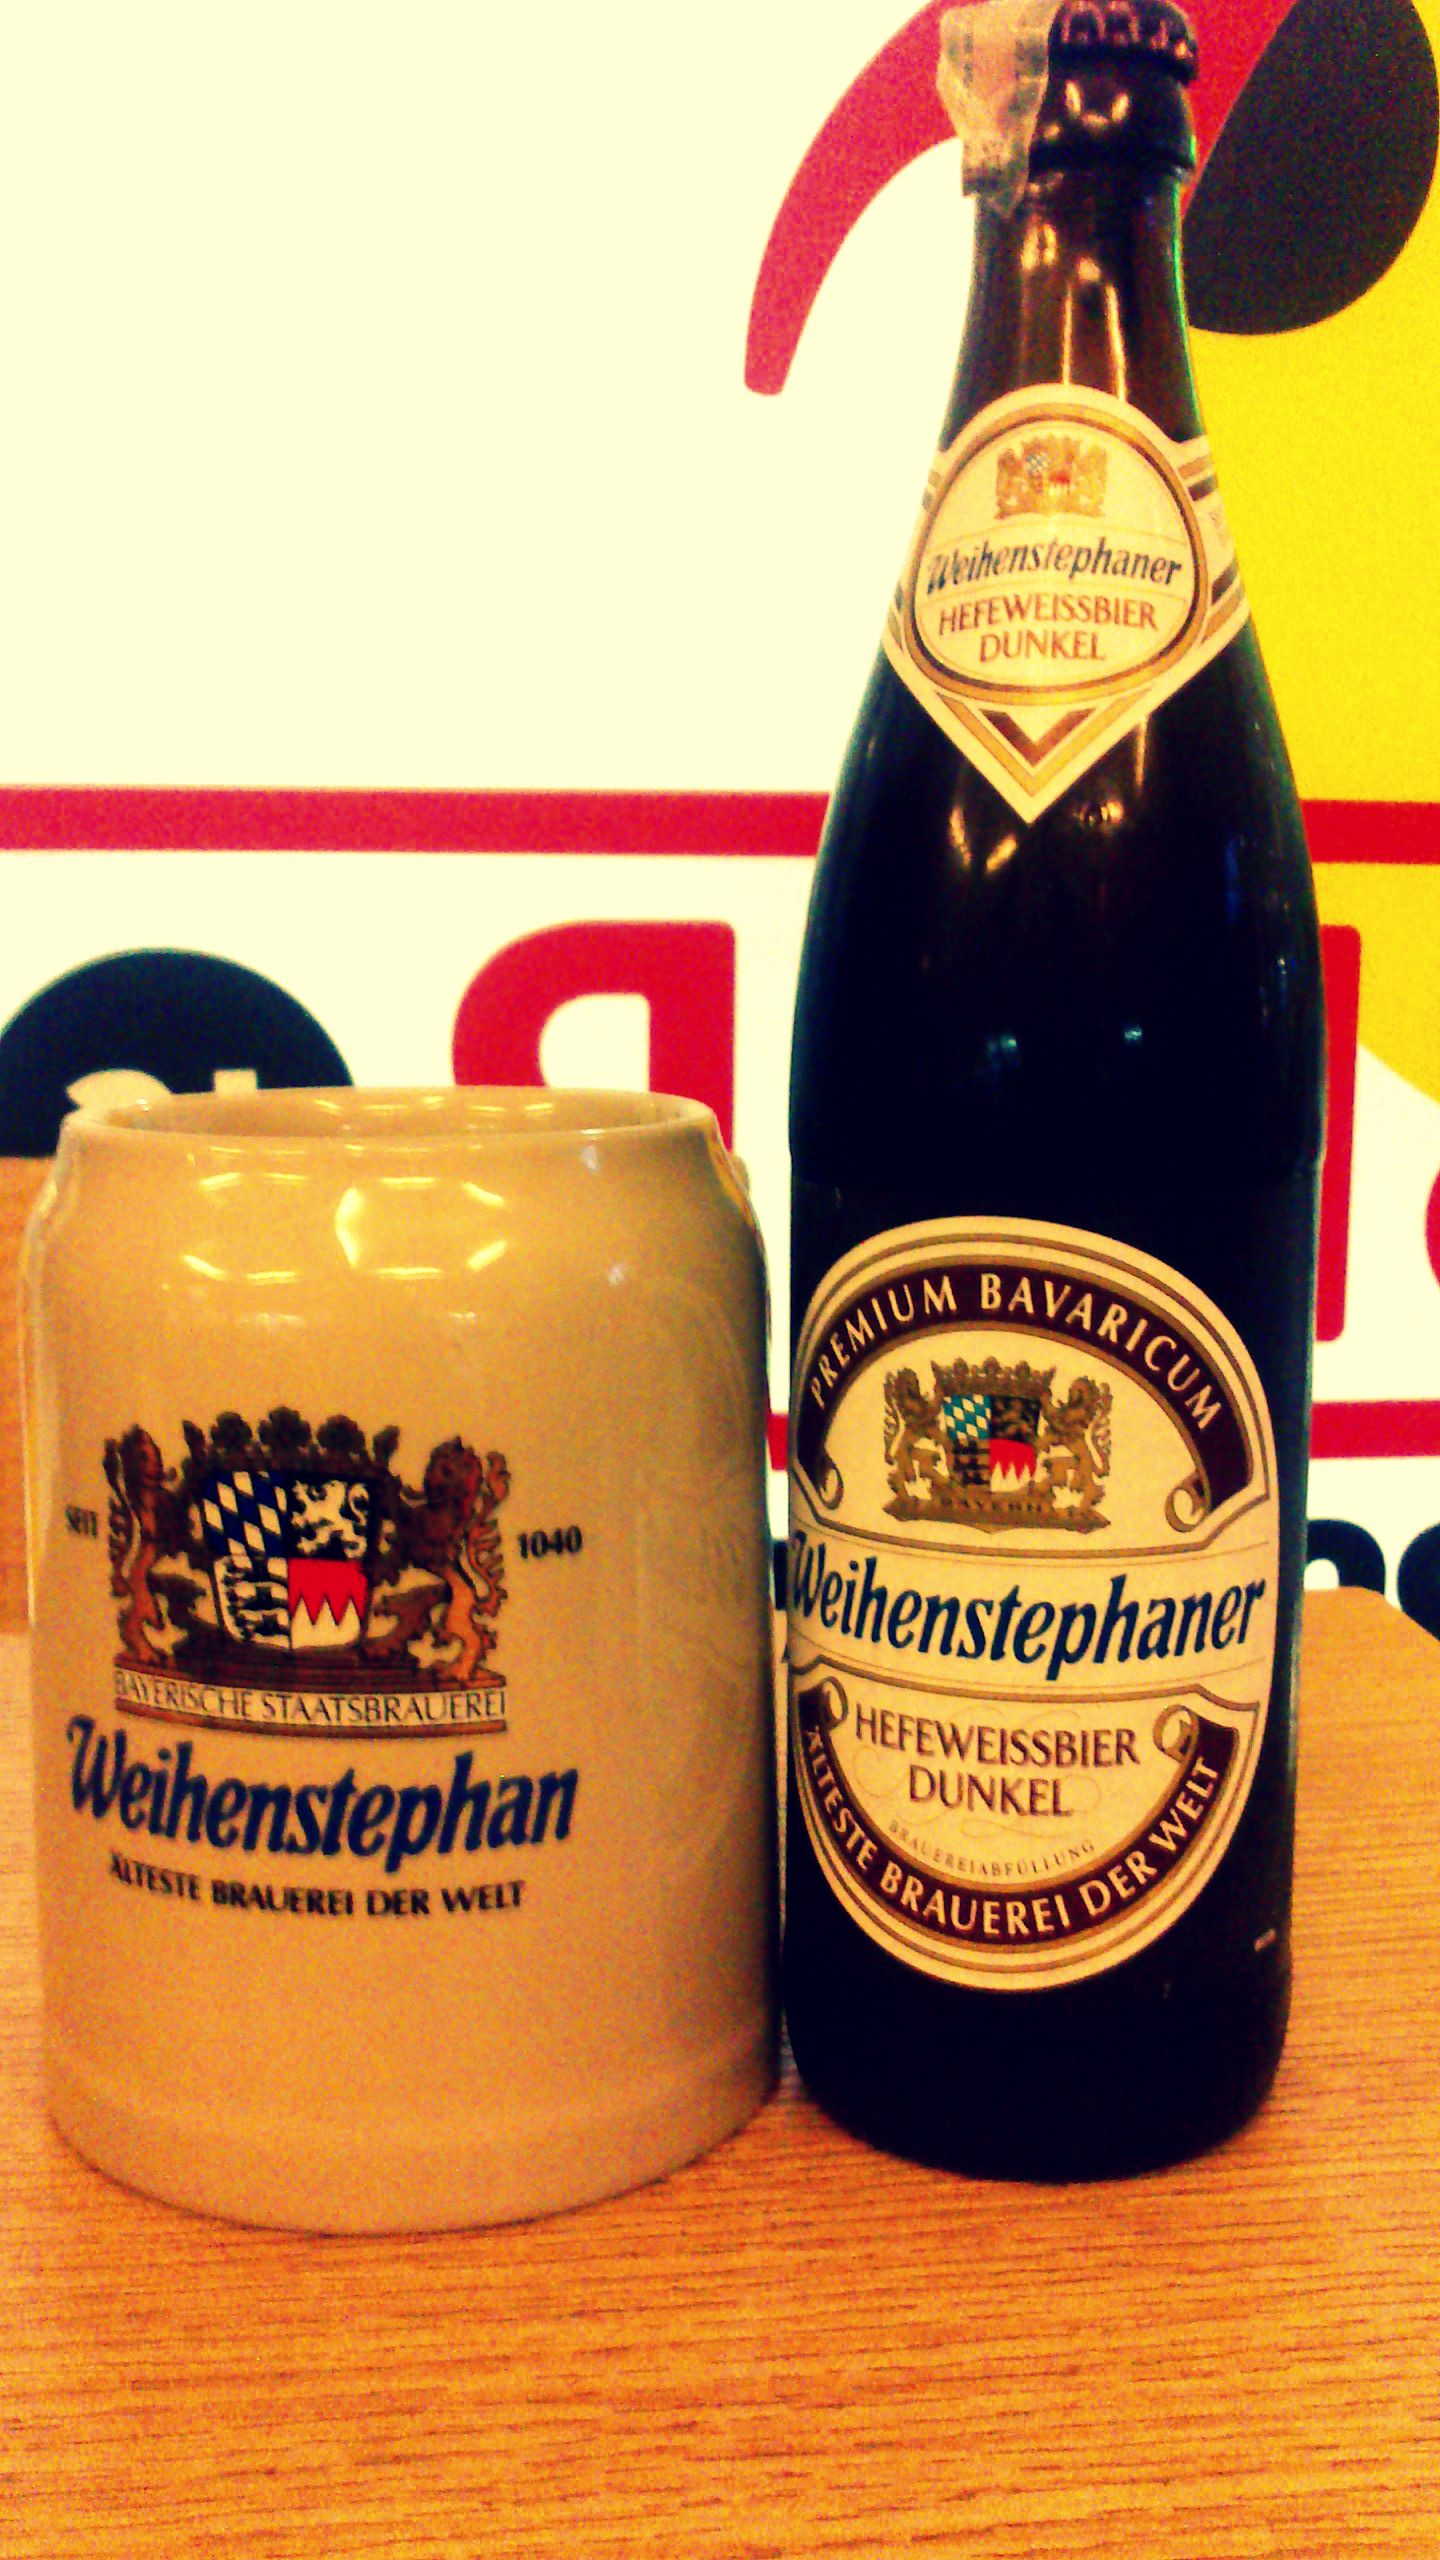 German Beer, as served at The Pint Room, New Delhi, India ...